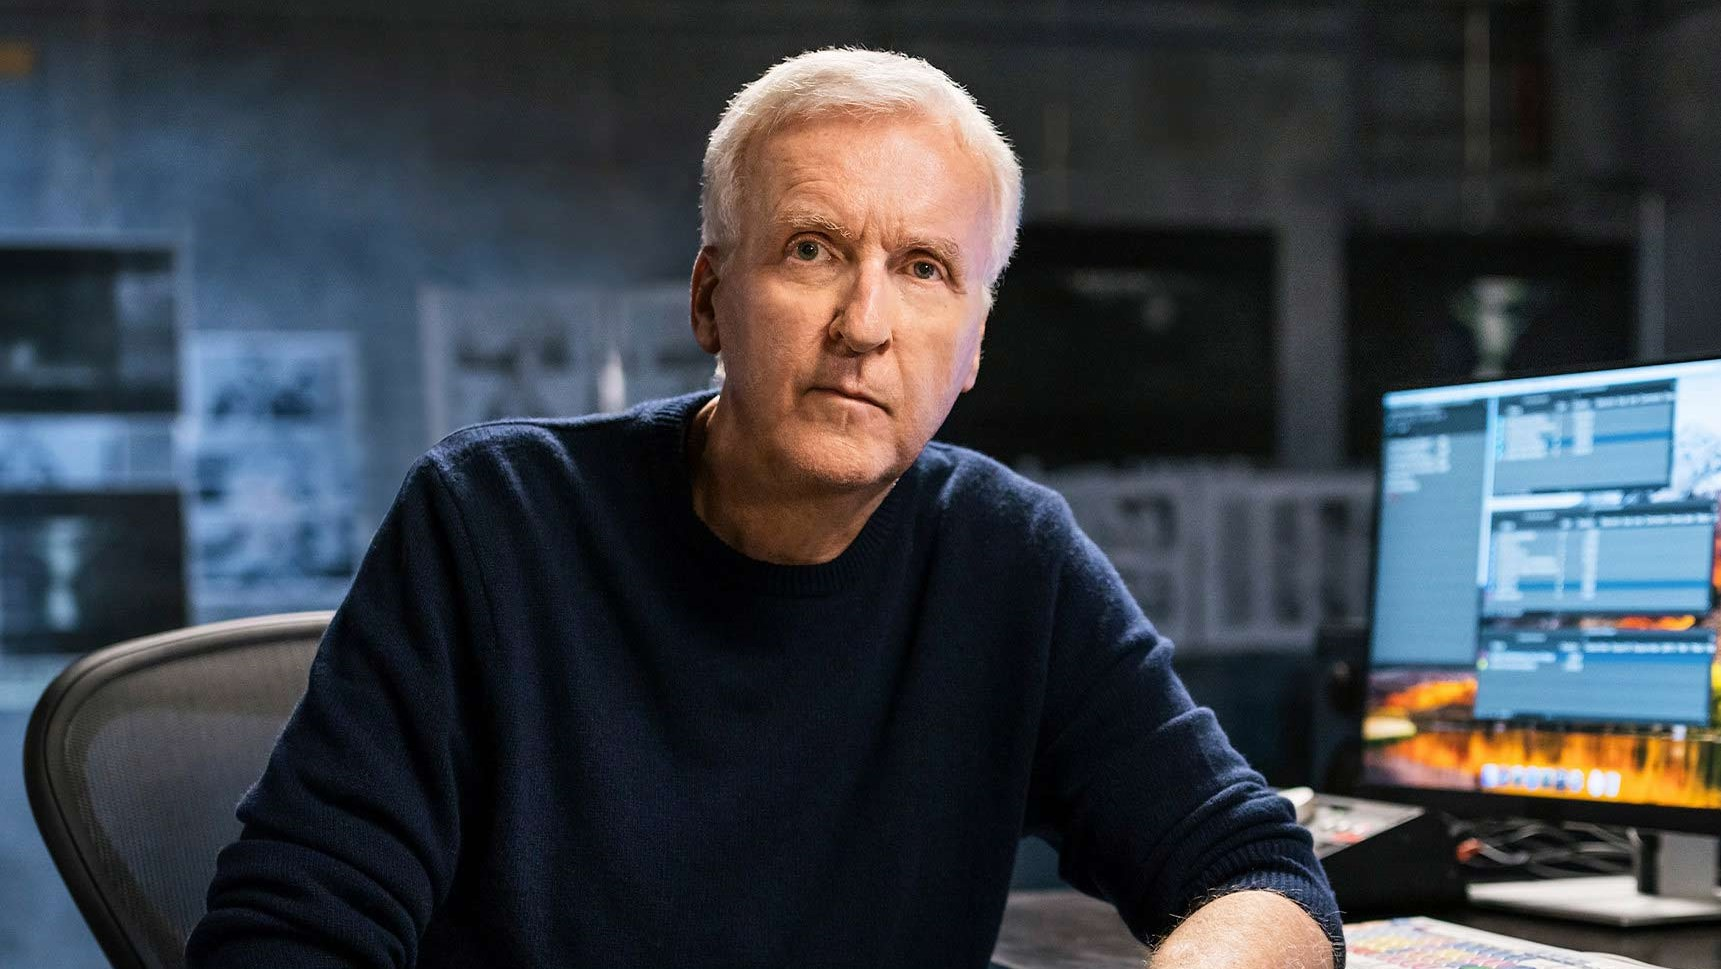 James Cameron Comes Back with the Blockbuster Sequel Avatar 2